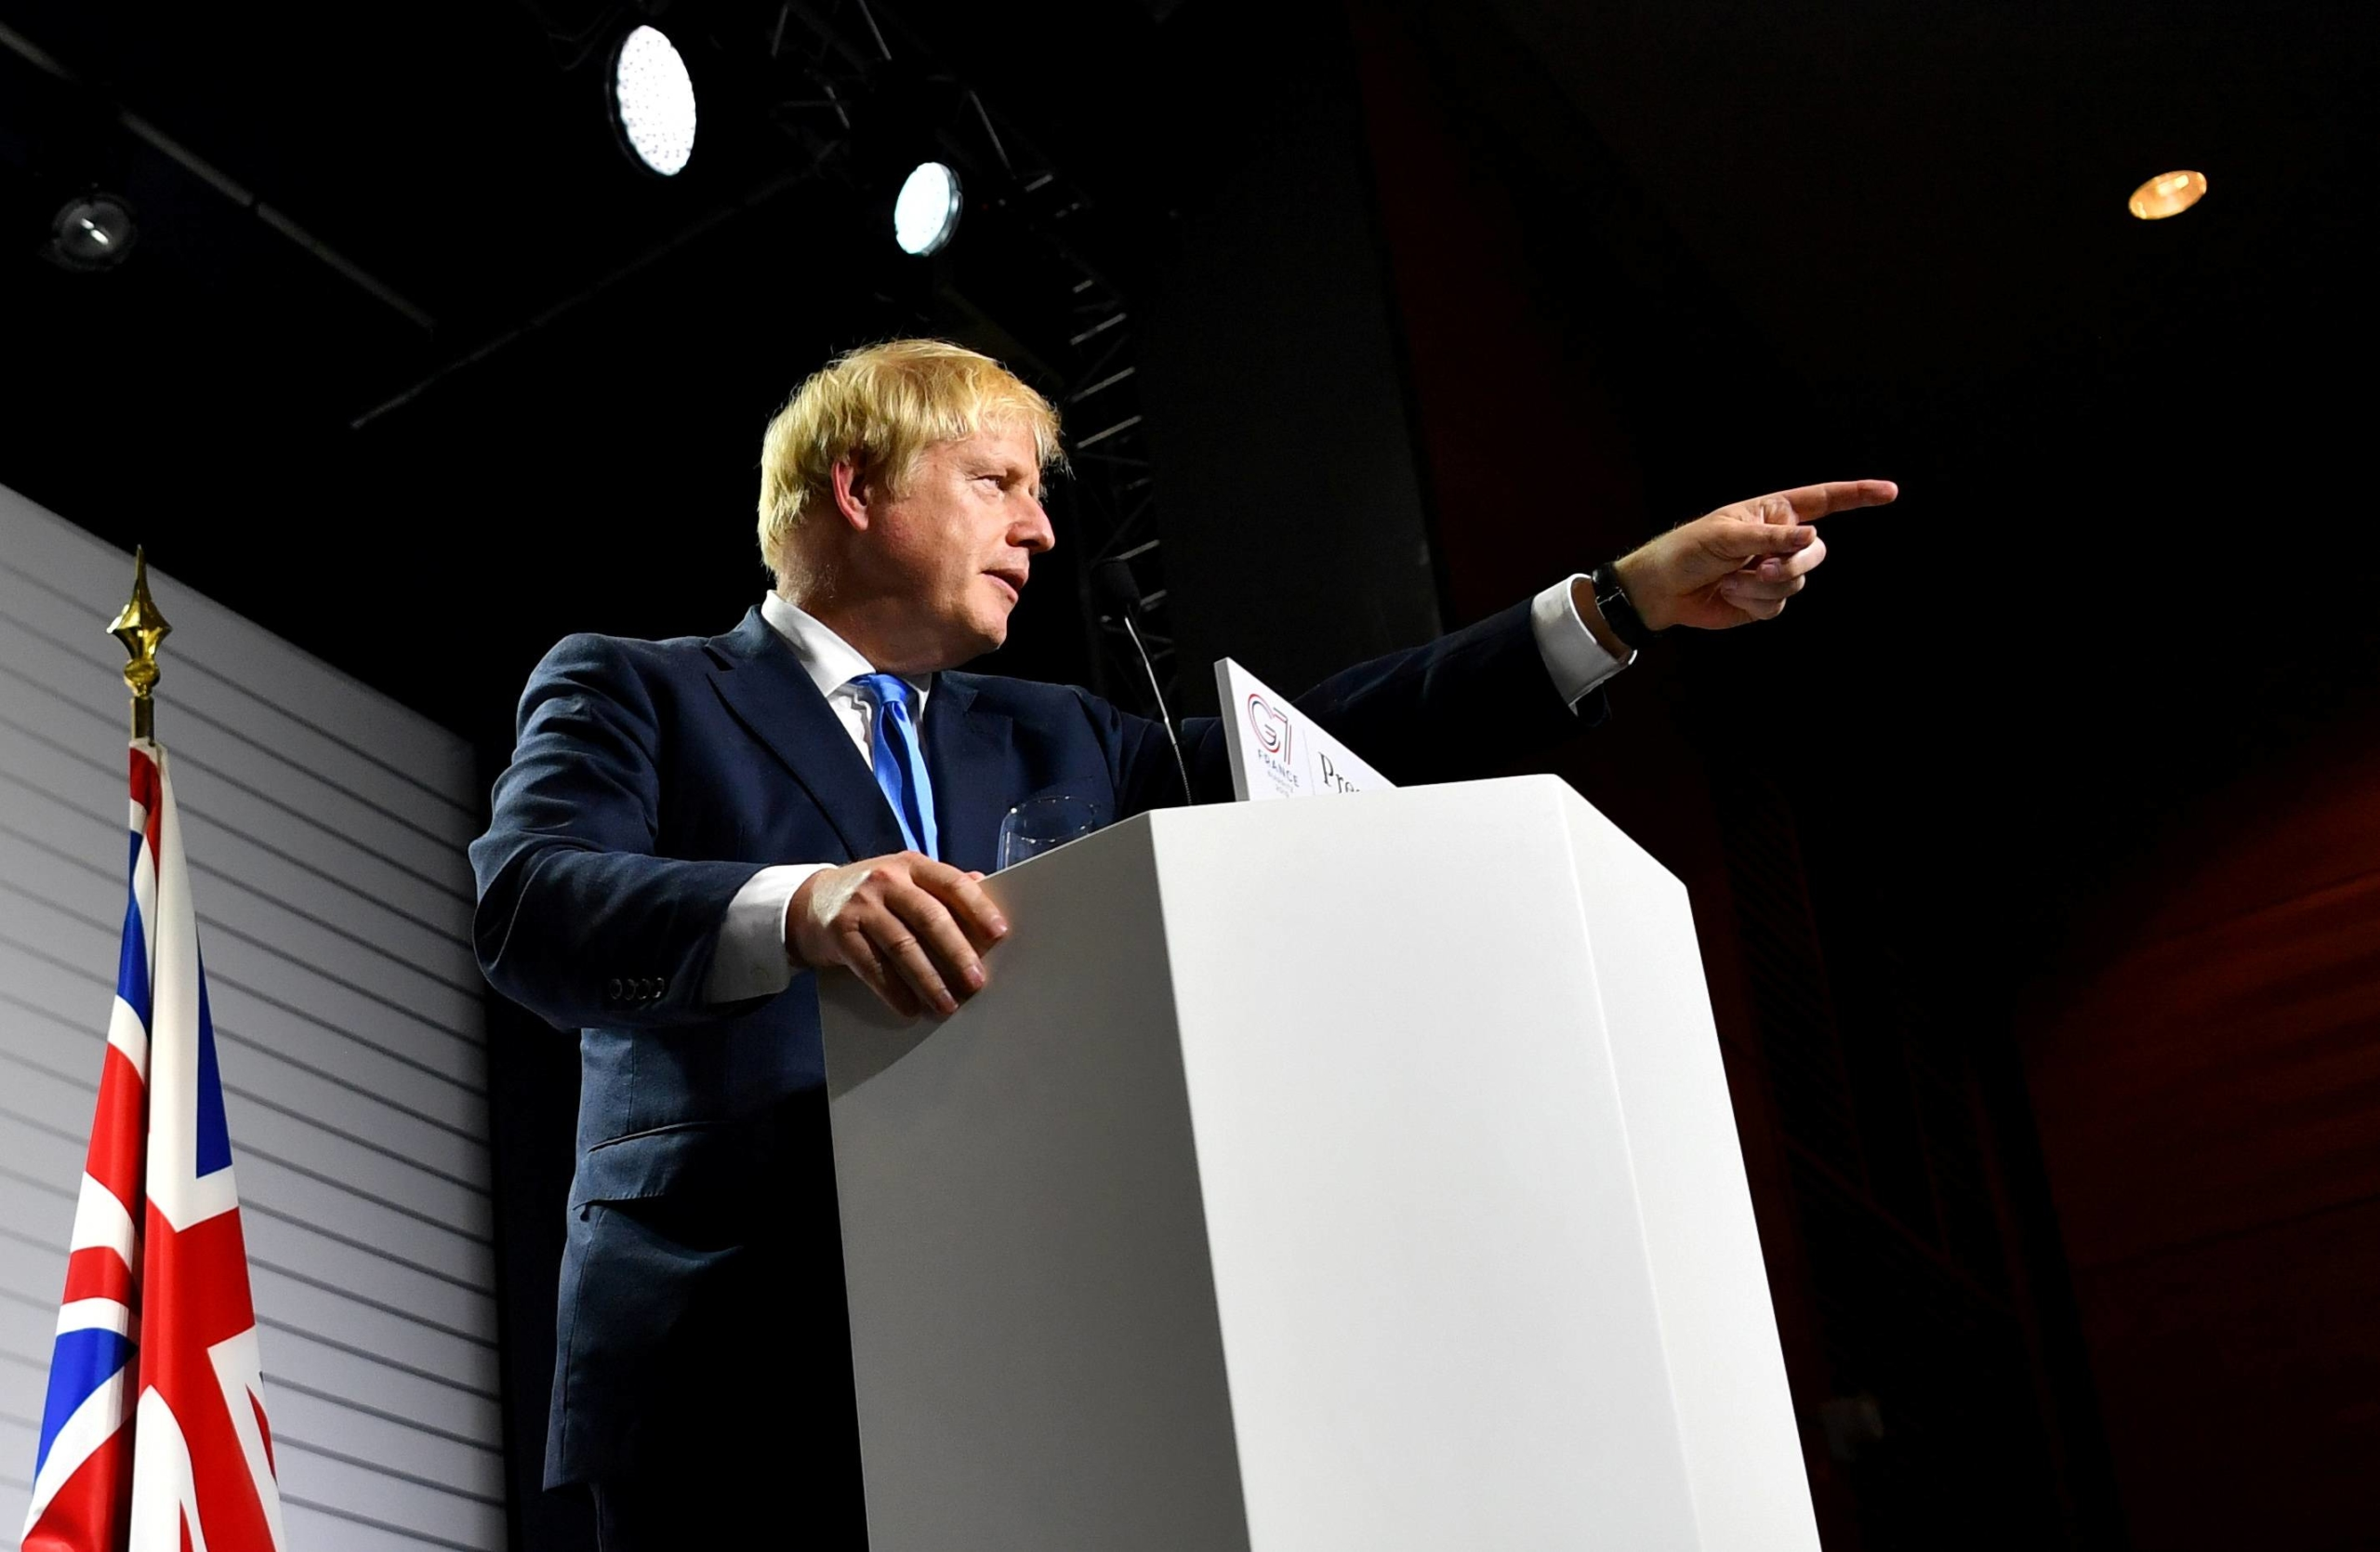 Britain's Prime Minister Boris Johnson speaks at a news conference at the end of the G7 summit in Biarritz, France, in August 2019. The 2021 meeting, due to take place this coming June, will be chaired by Britain. |  REUTERS